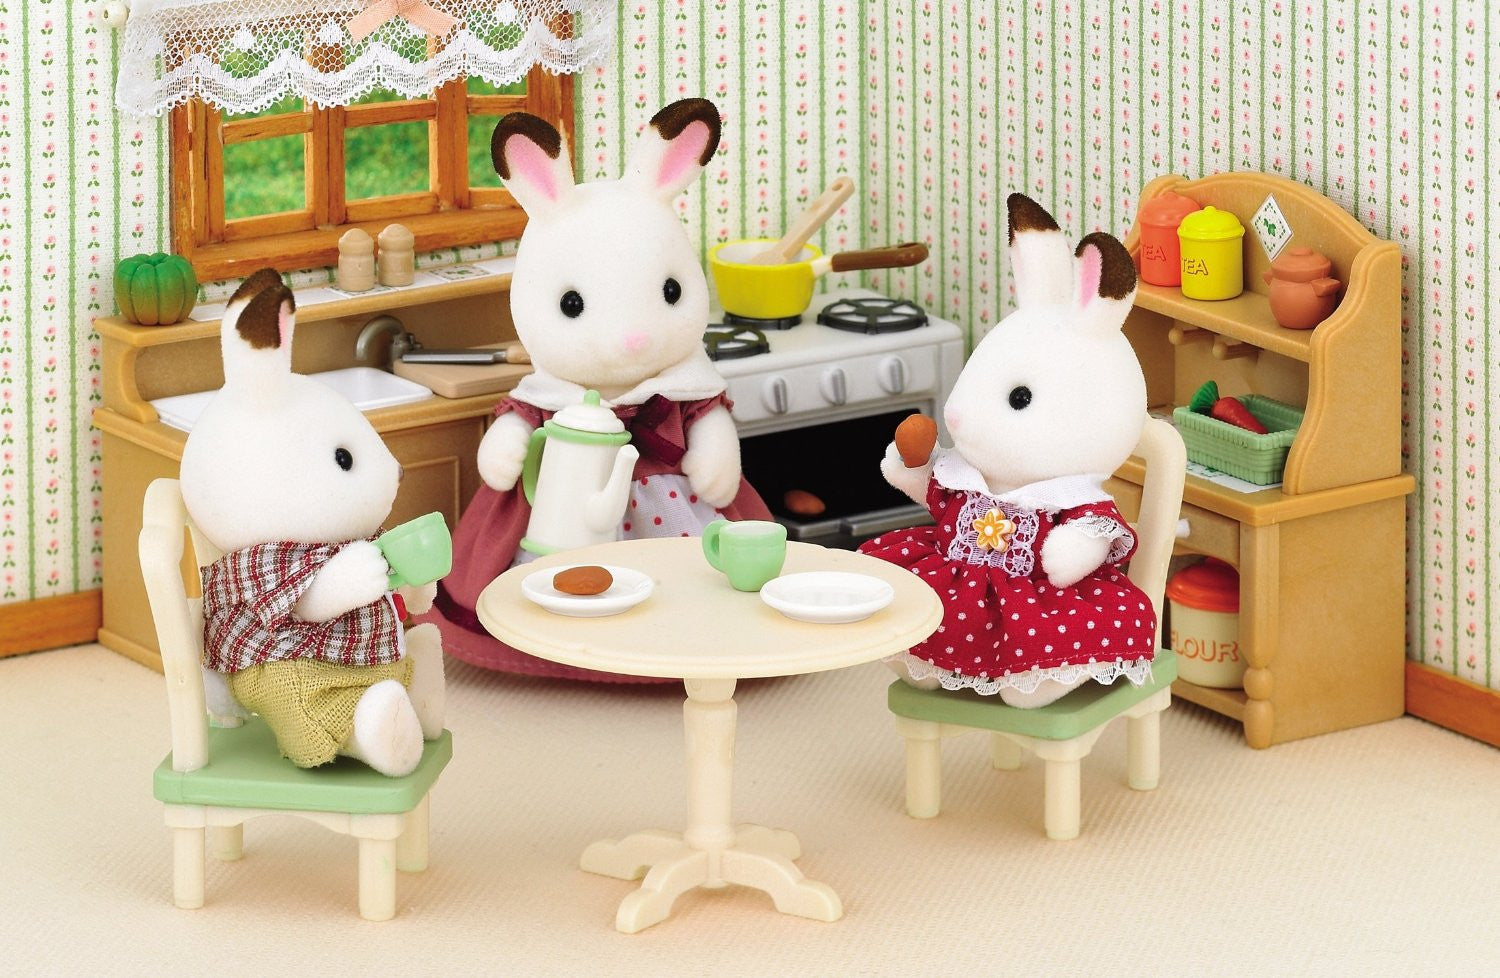 Sylvanian Families Dining Room Set Se 150 Japan Calico Critters